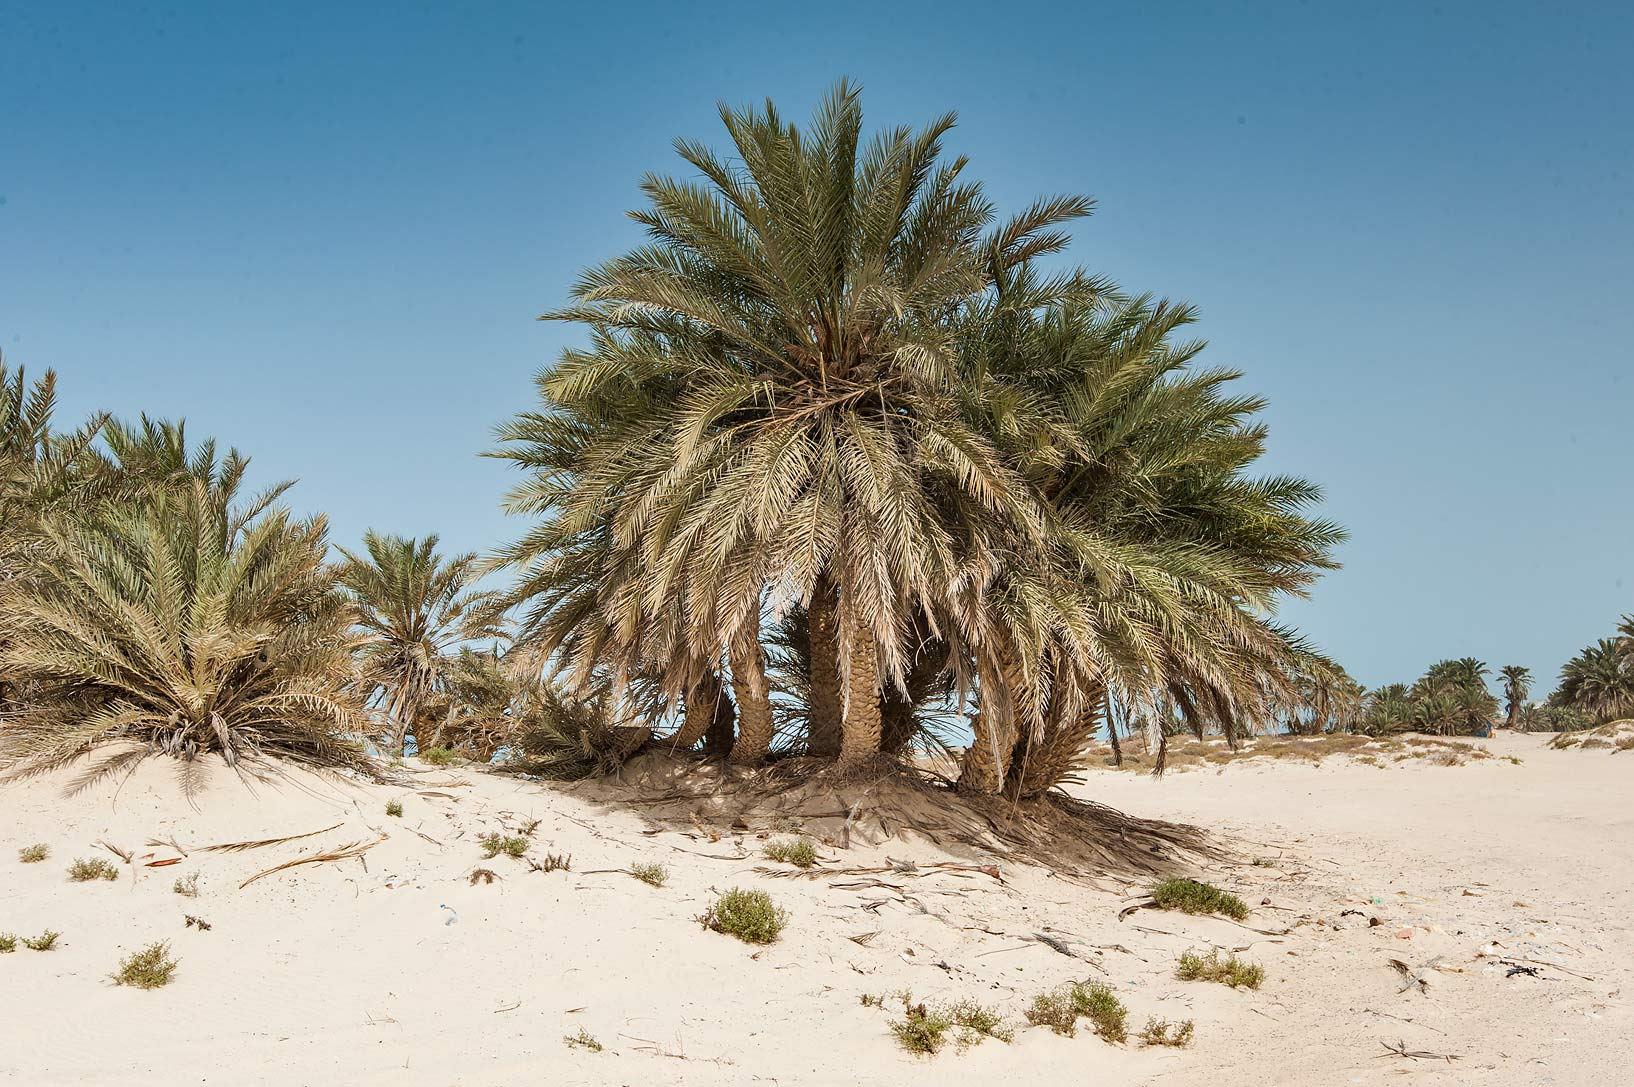 Group of date palms (Phoenix dactylifera, local...near Umm Bab in south-western Qatar